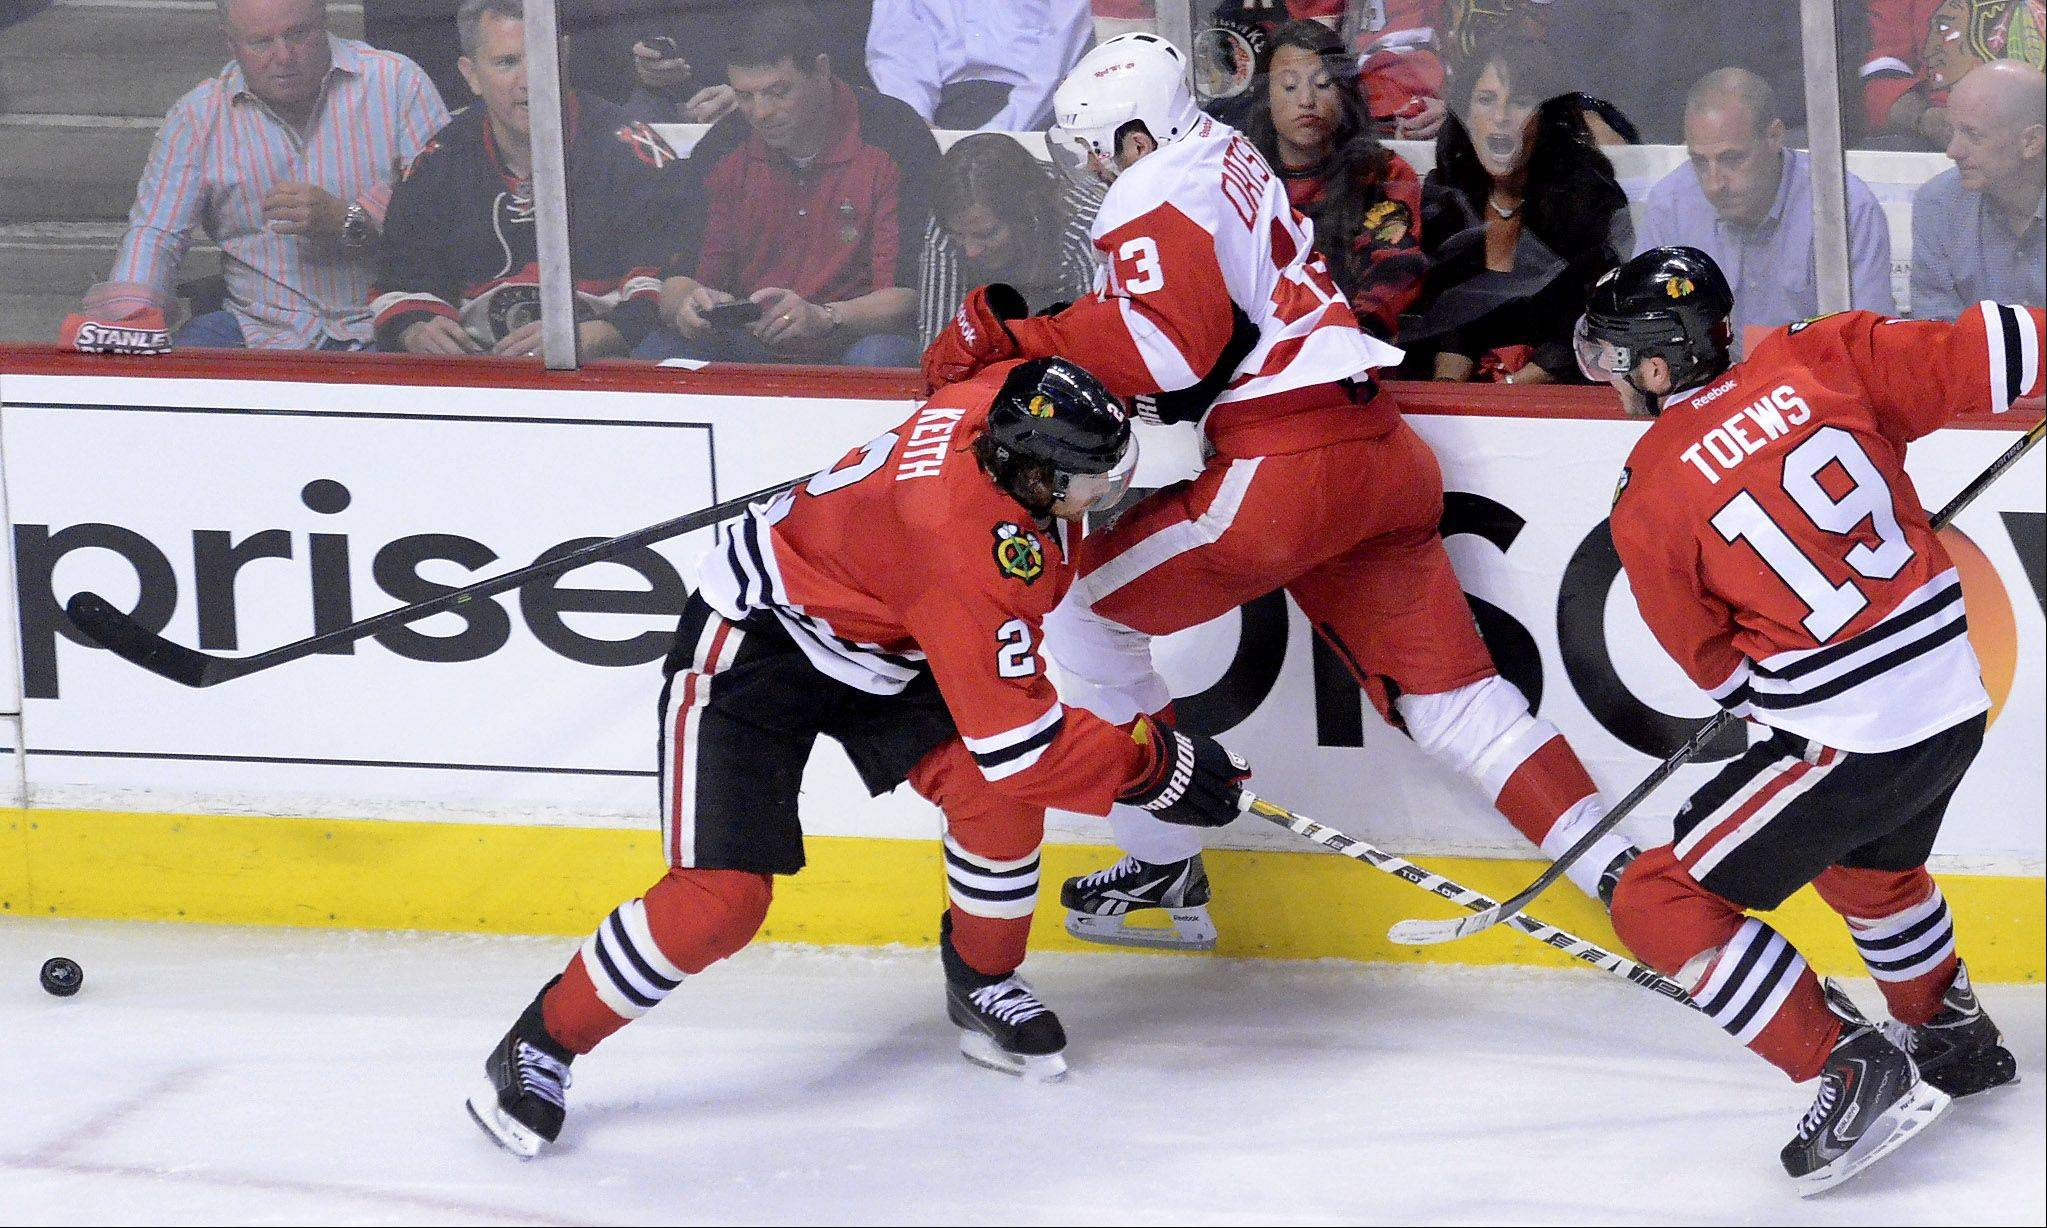 Detroit's Pavel Datsyuk gets sandwiched between Duncan Keith and Jonathan Toews in first-period action of Game 1 of the Western Conference semifinals between the Blackhawks and the Red Wings.